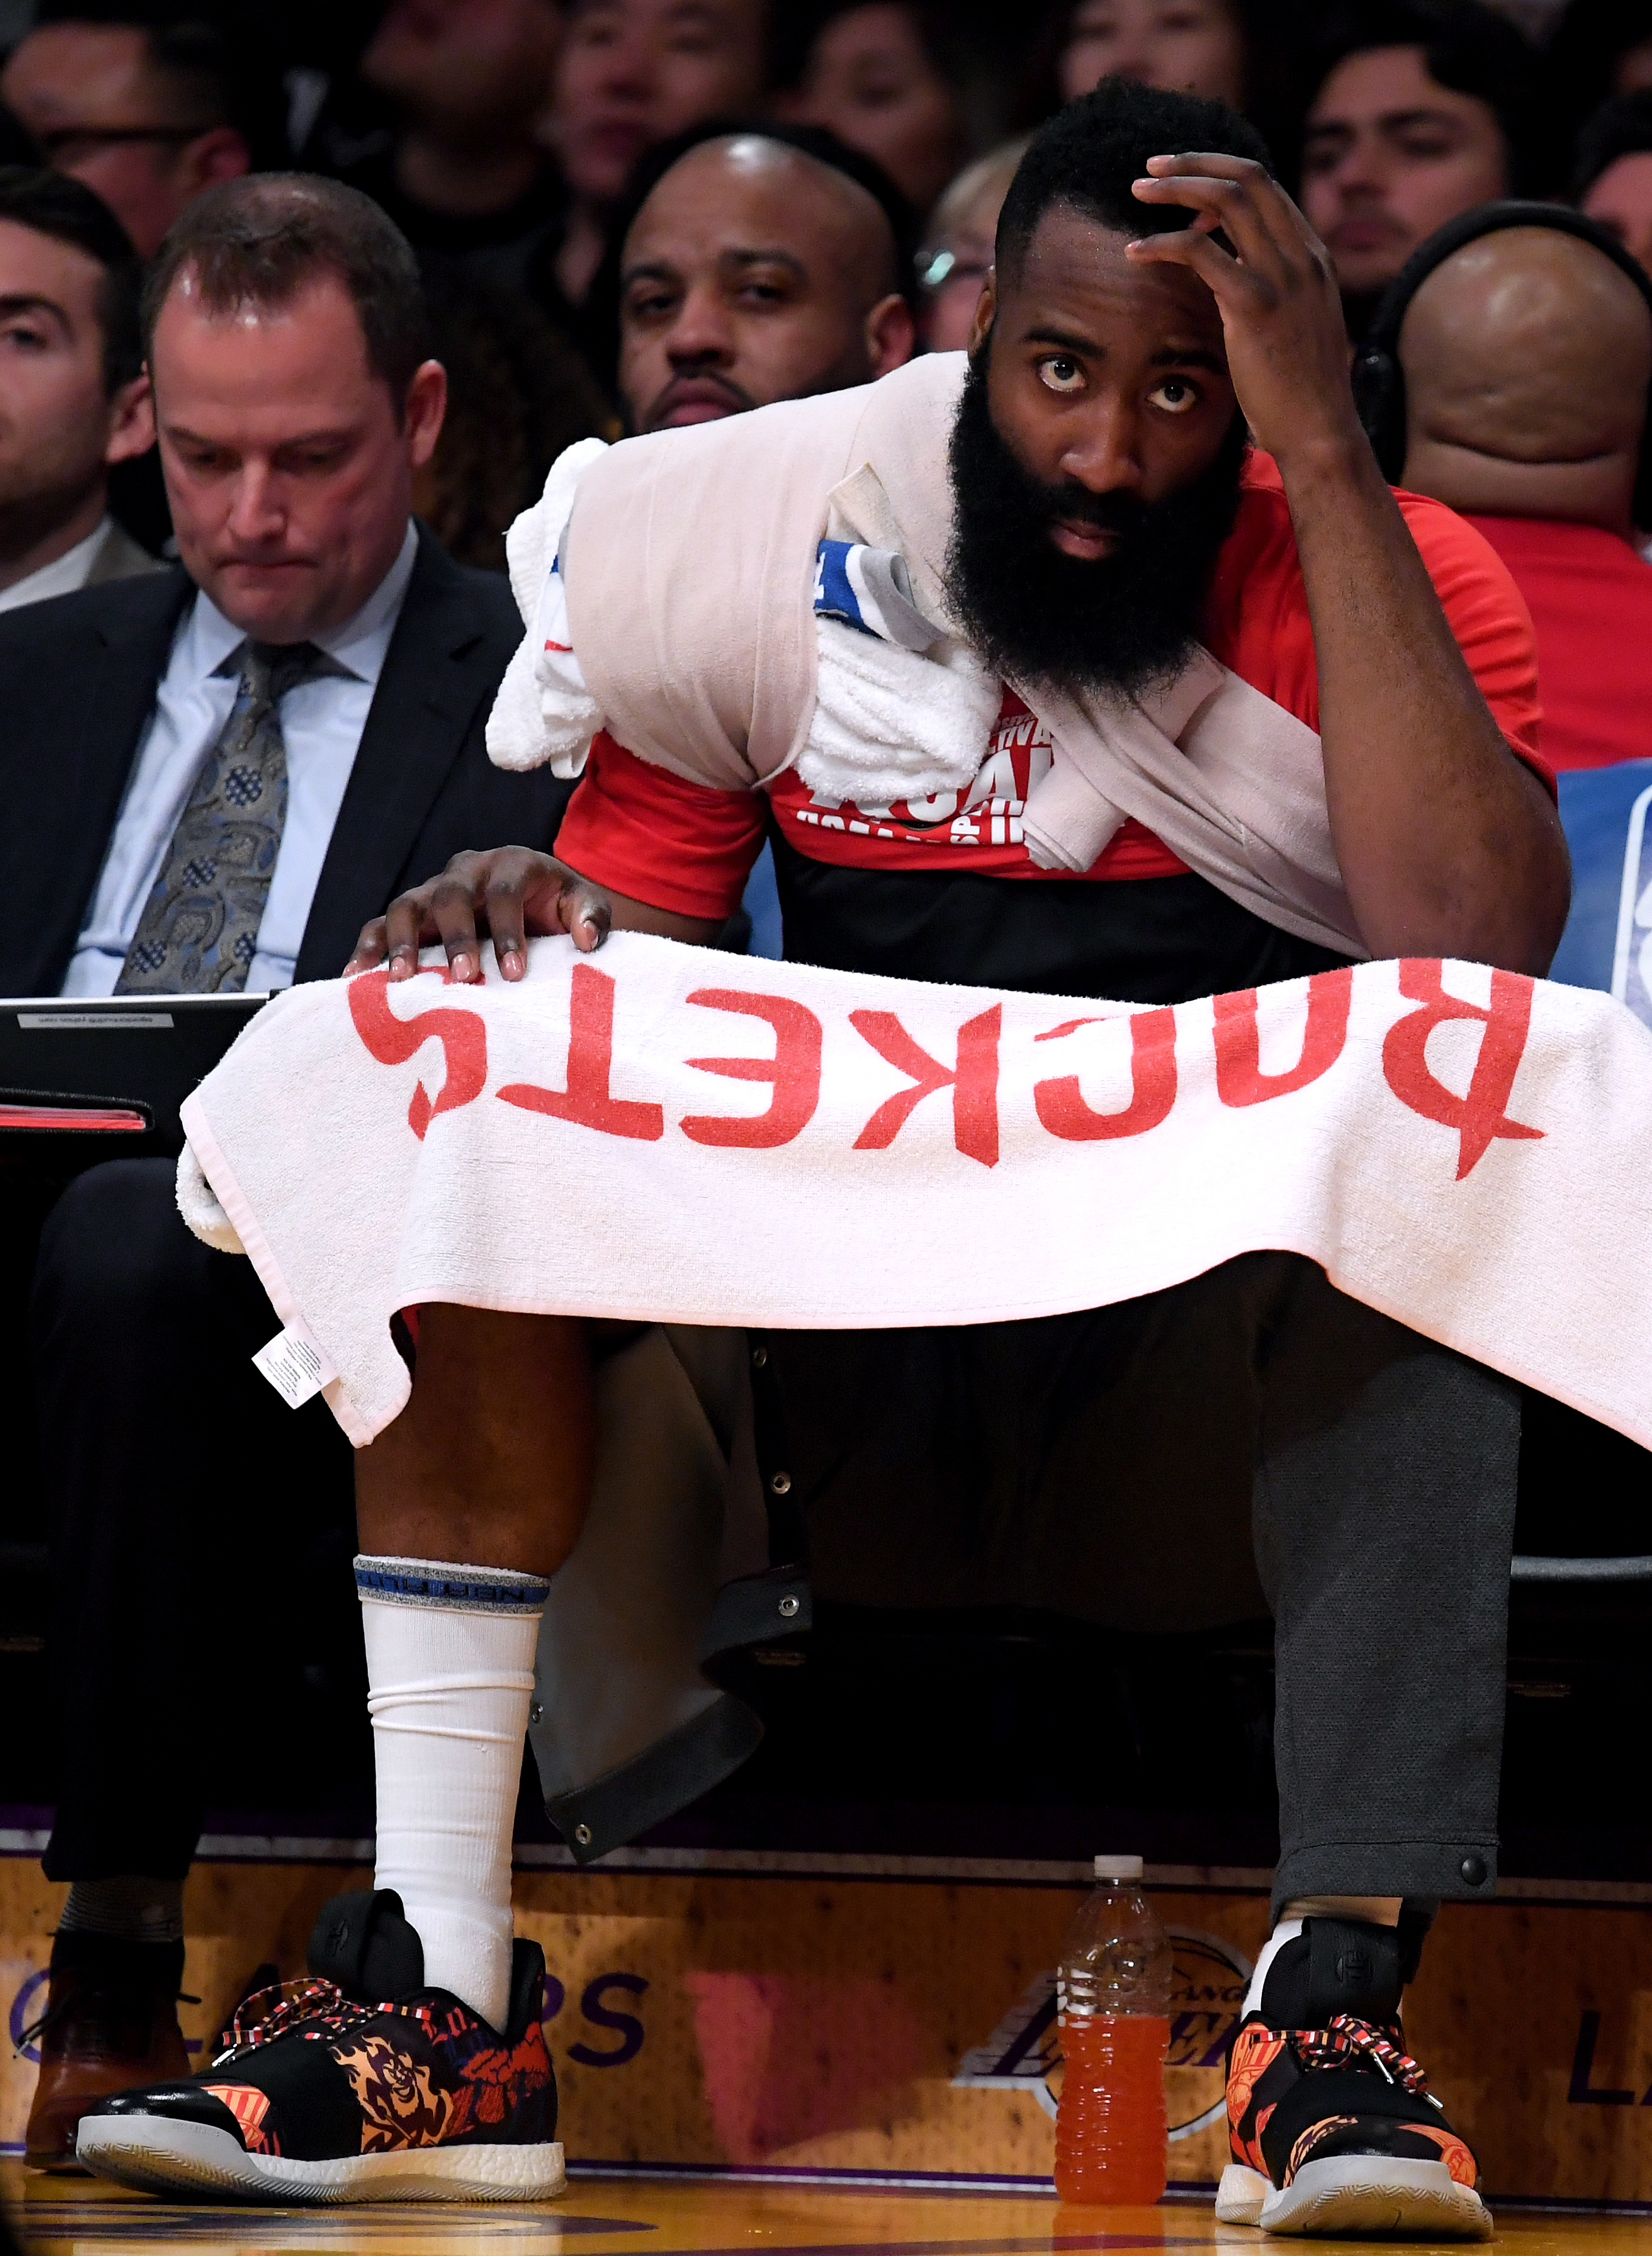 James Harden blasts referee Scott Foster after loss to Lakers, says he shouldn't officiate Rockets games